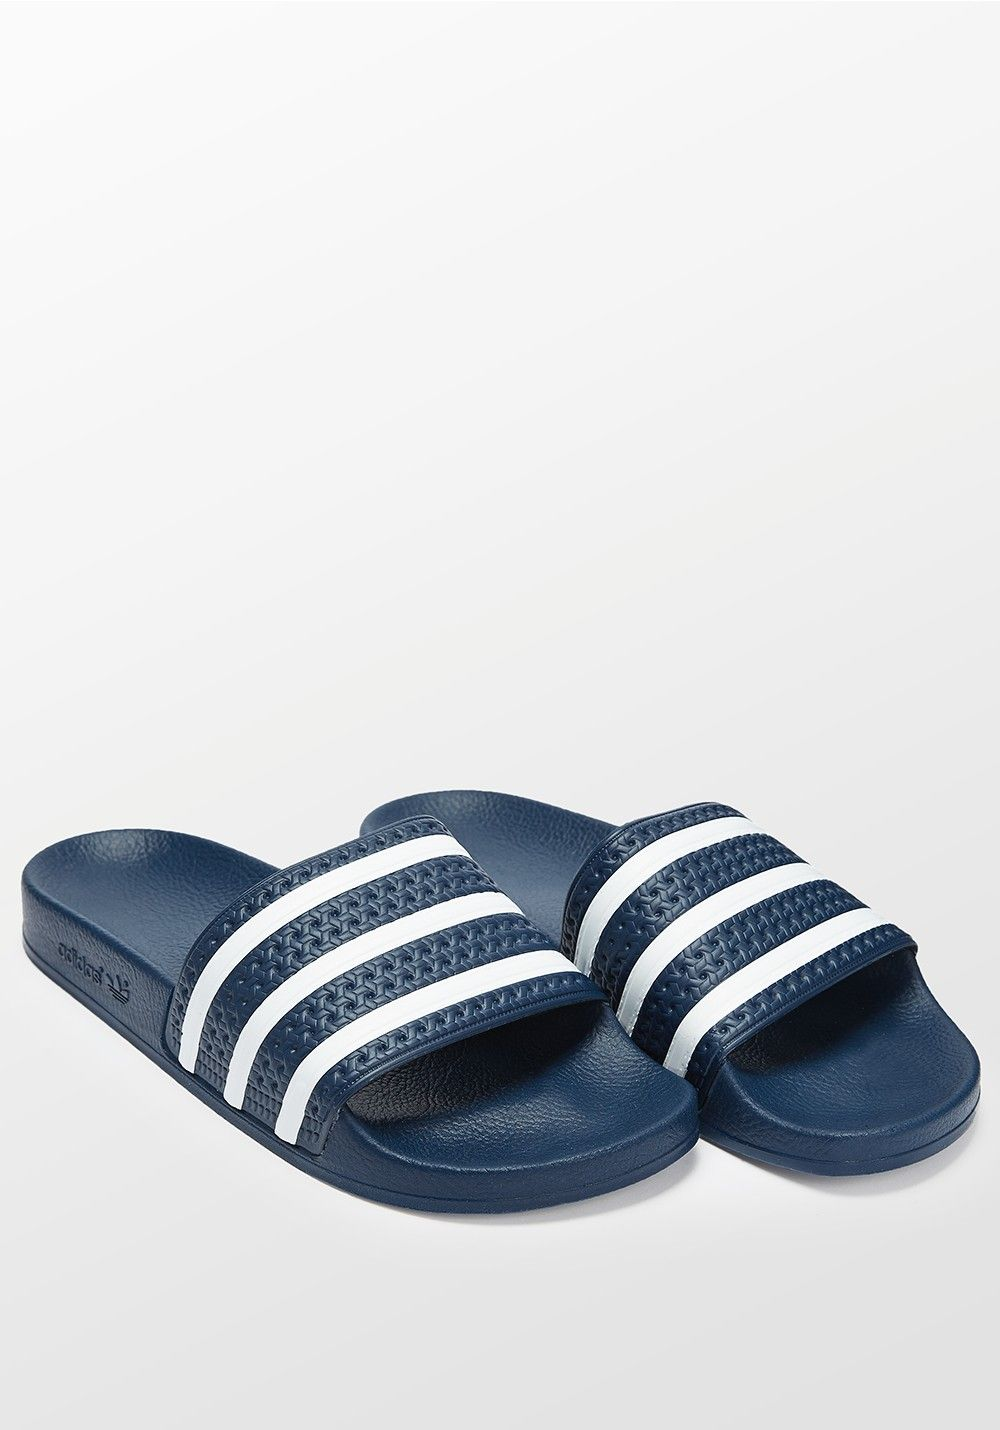 92b1bf81e Adidas Adilette navy blue and white slides Adidas Flip Flops